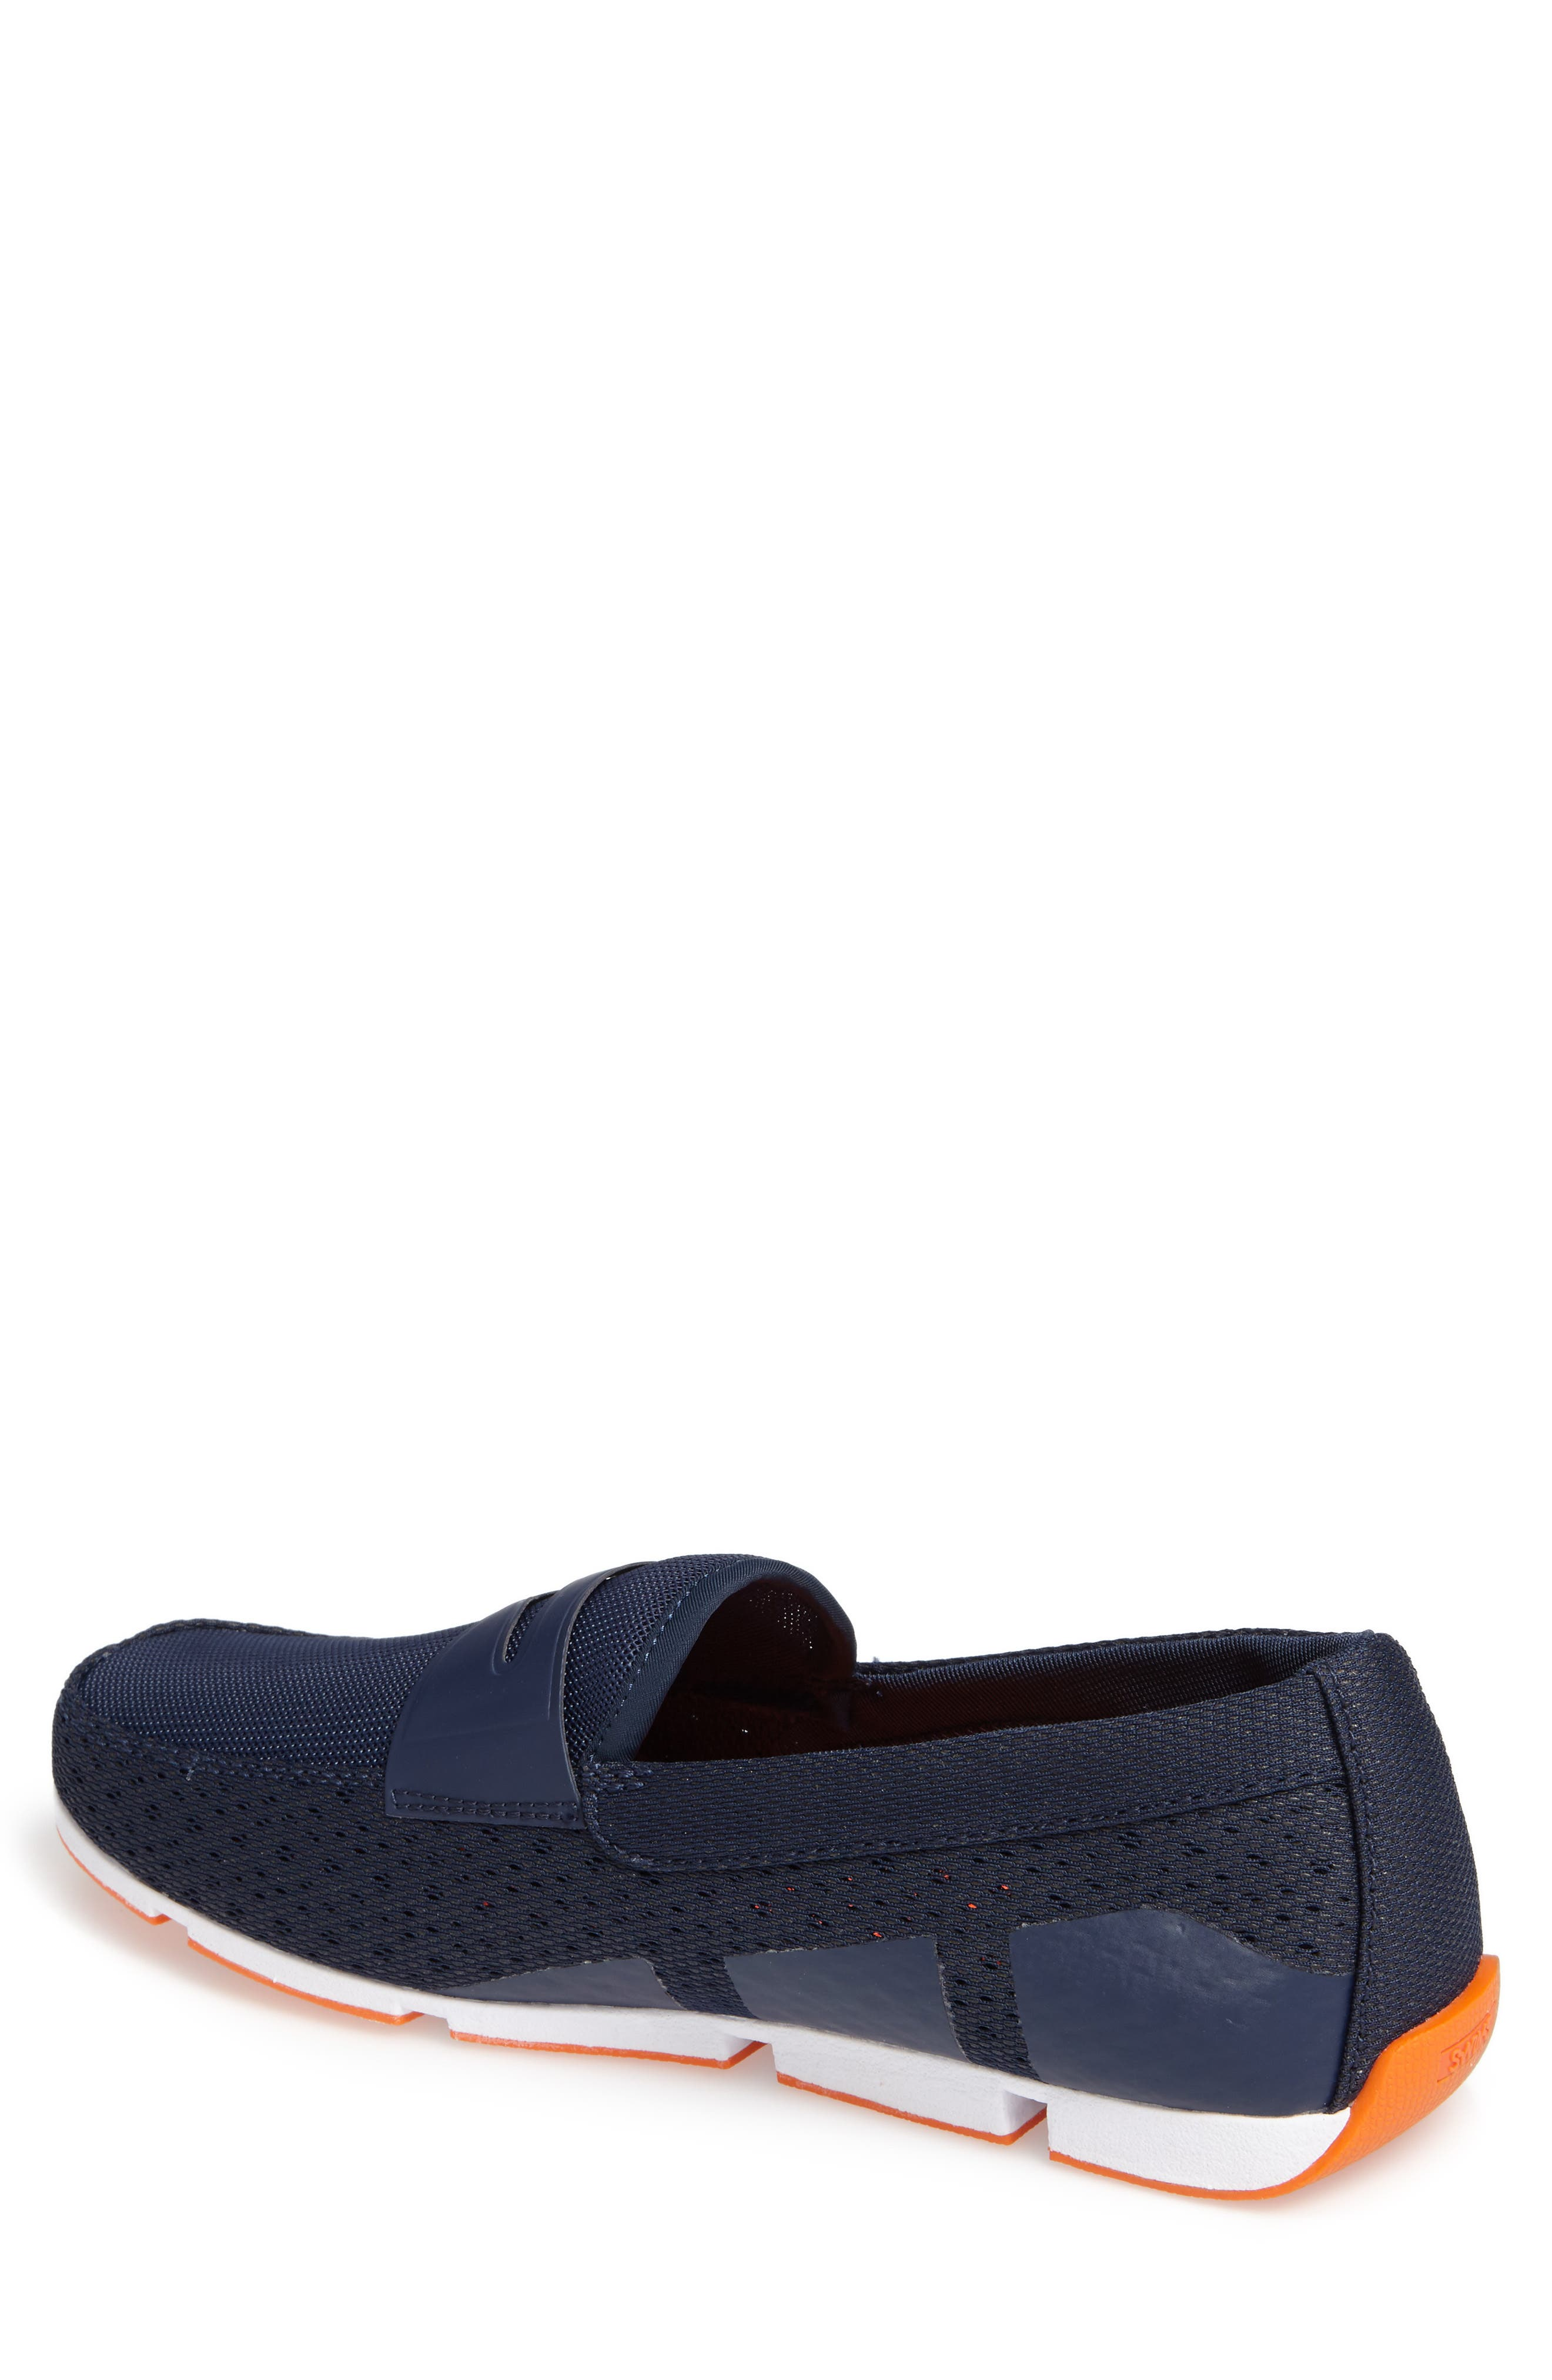 Breeze Penny Loafer,                             Alternate thumbnail 9, color,